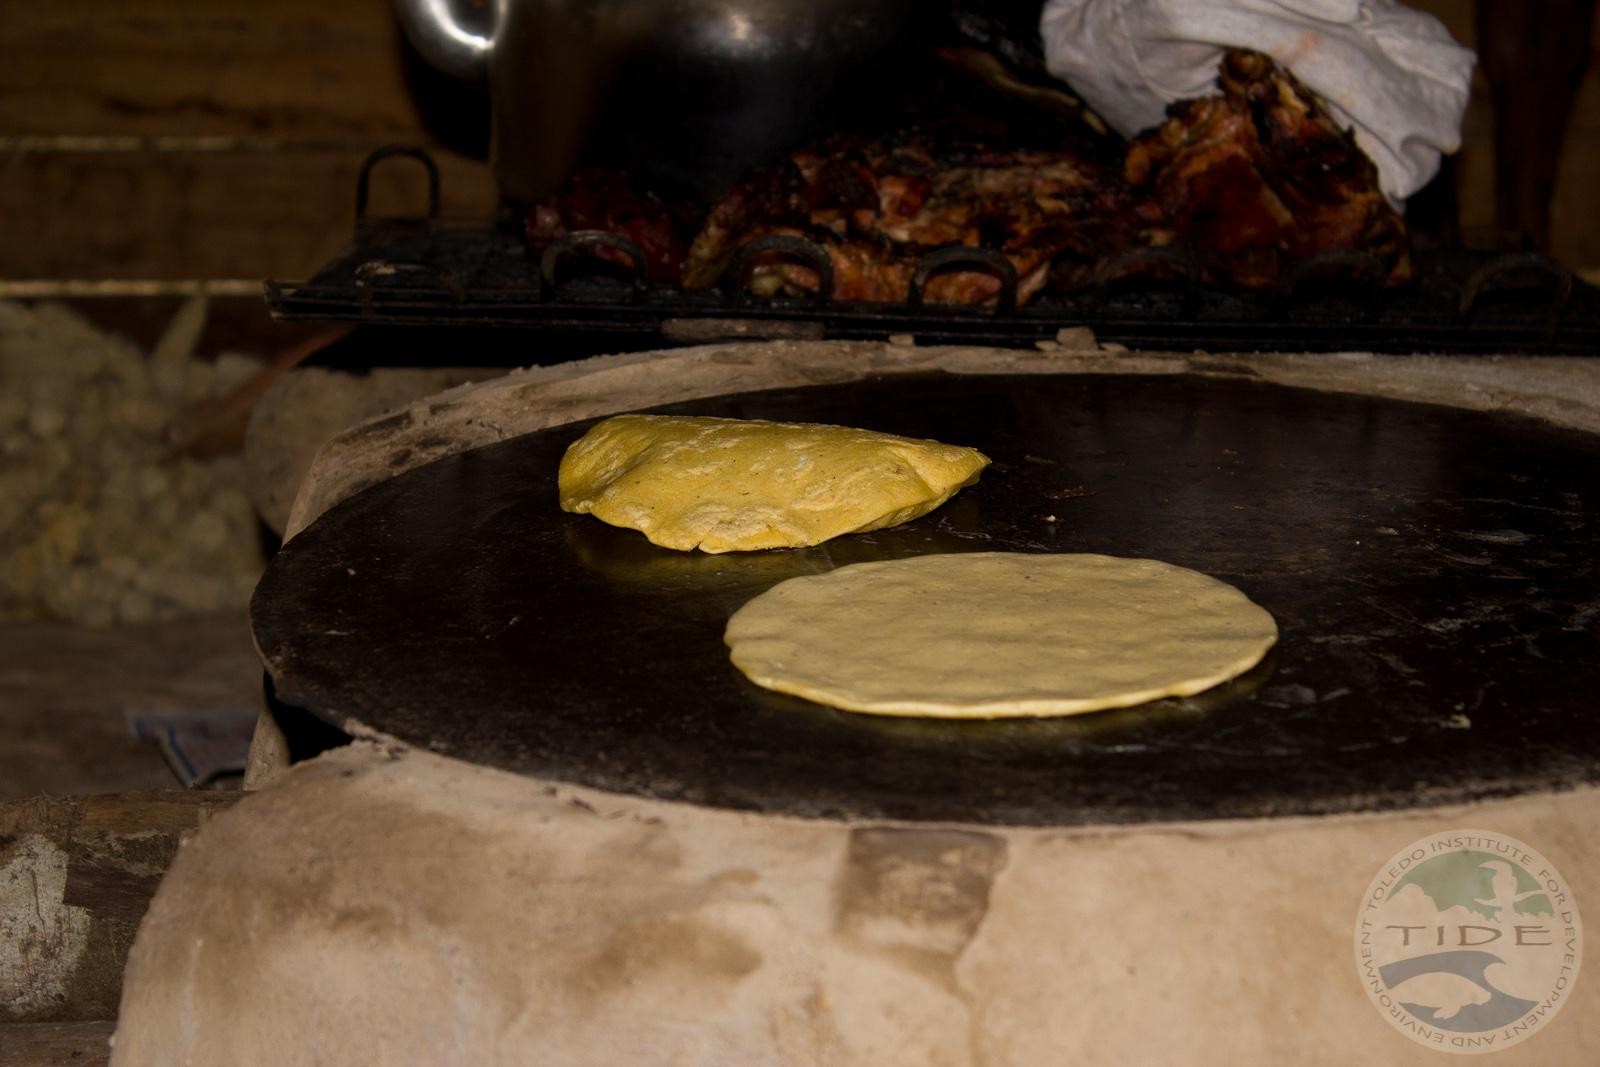 RT @TideTours: Corn tortillas and roasted pork with beans is just one of the very many #Maya lunches in #Belize! http://t.co/rVYQNysrcQ